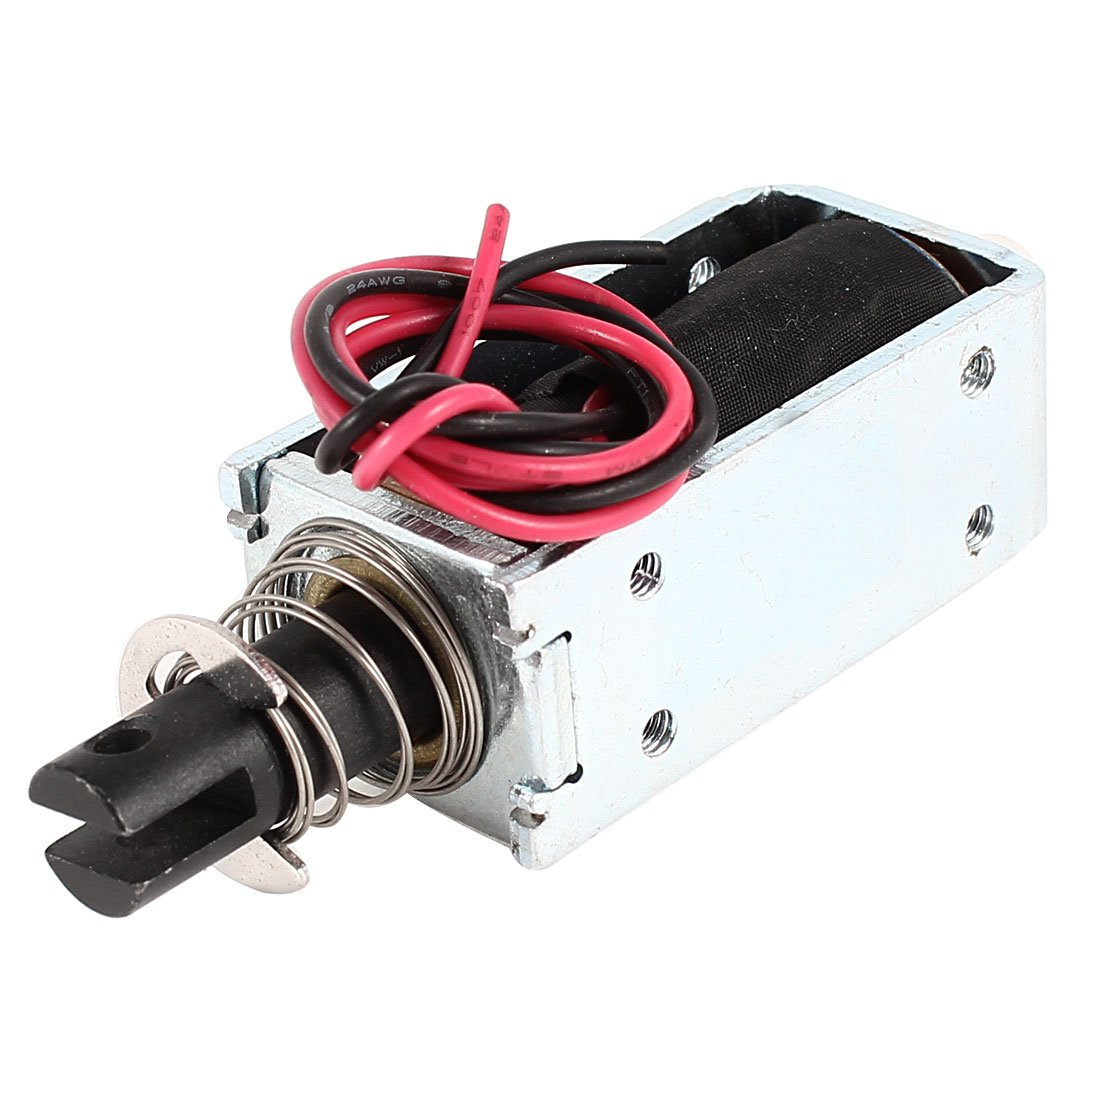 uxcell DC 48V 10mm 400gf Force Push Pull Type Tubular Solenoid Electromagnet a14052300ux1079